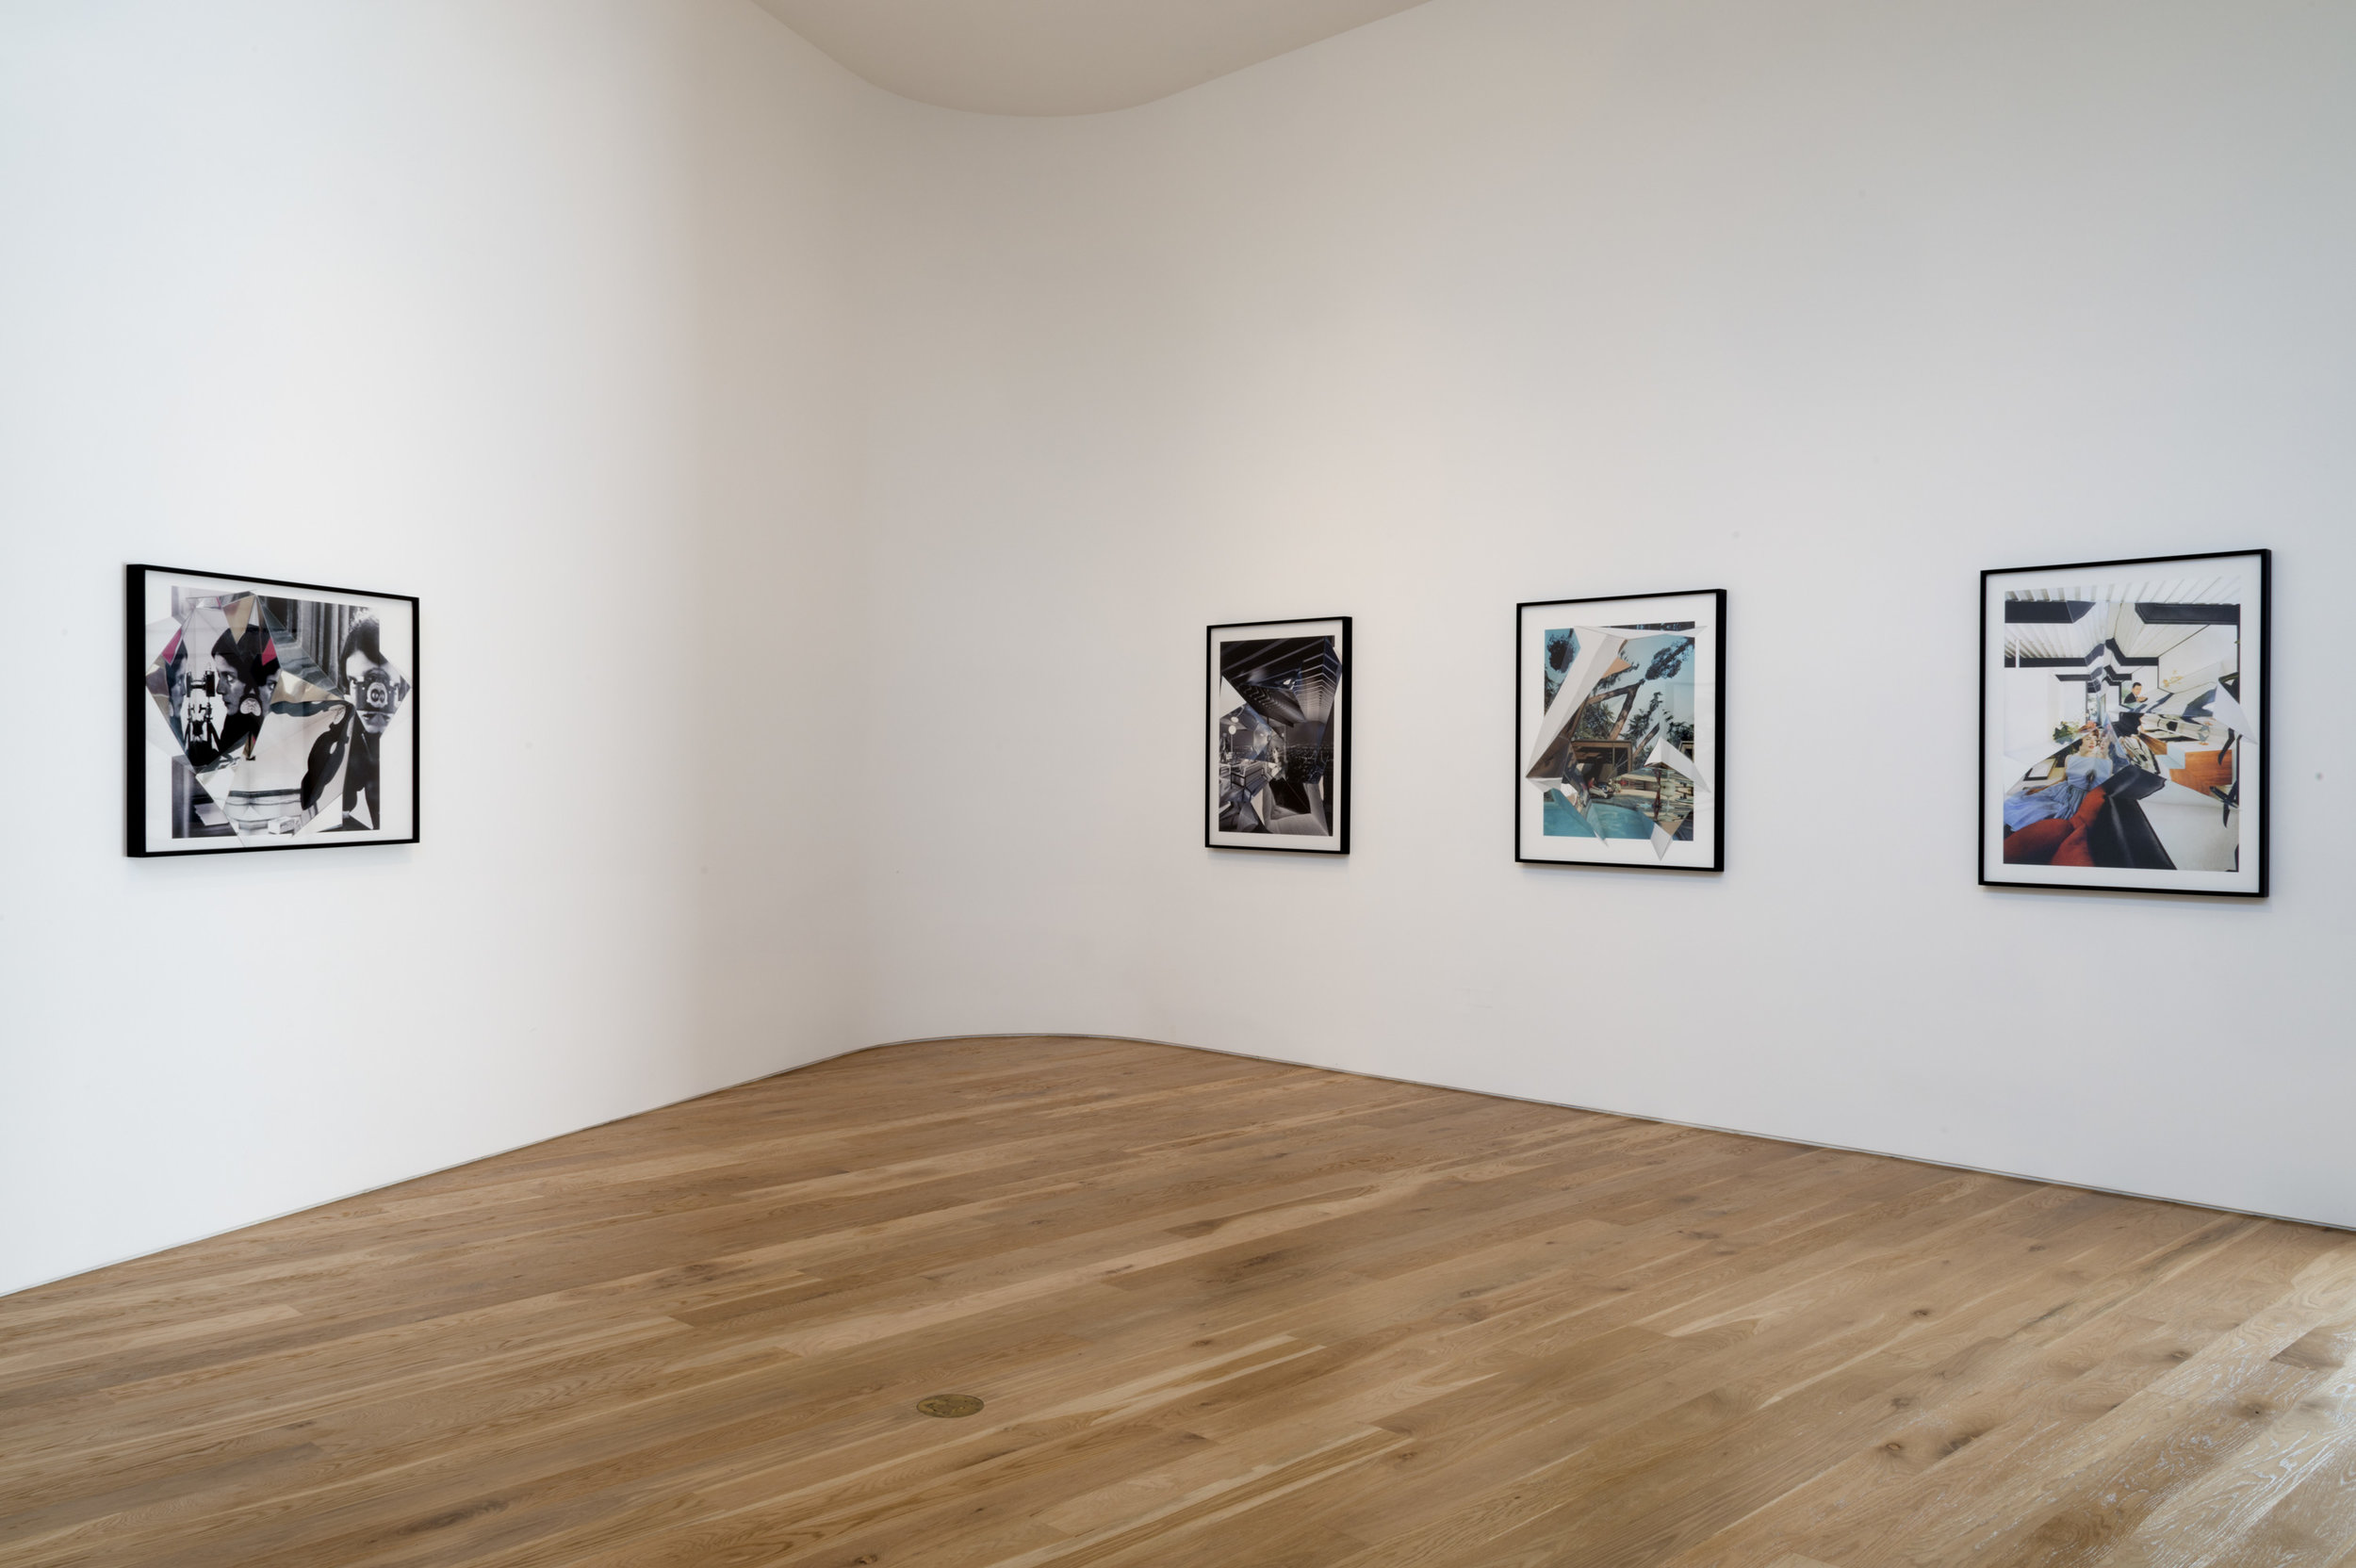 Betsy Lin Seder, Kevin Appel, Cannon Hudson, installation view, 2012.